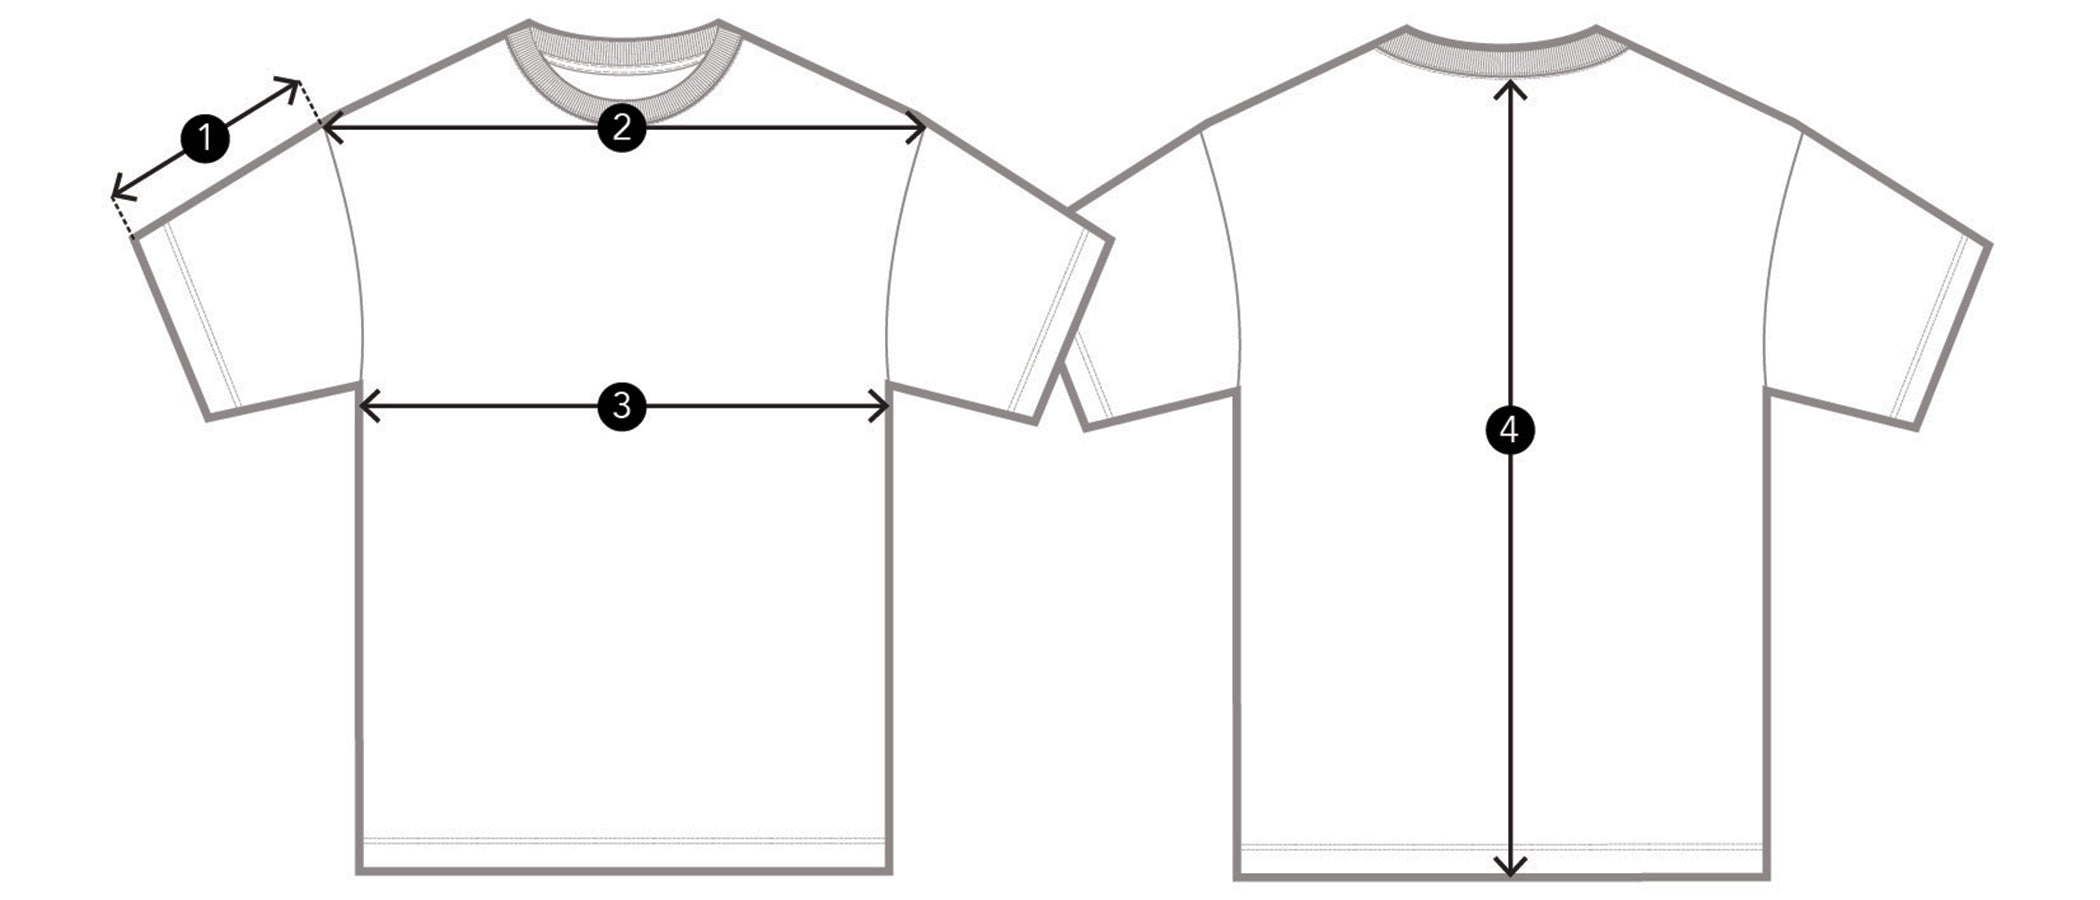 Kith for Russell Athletic Quinn Tee - French Clay Size Guidelines